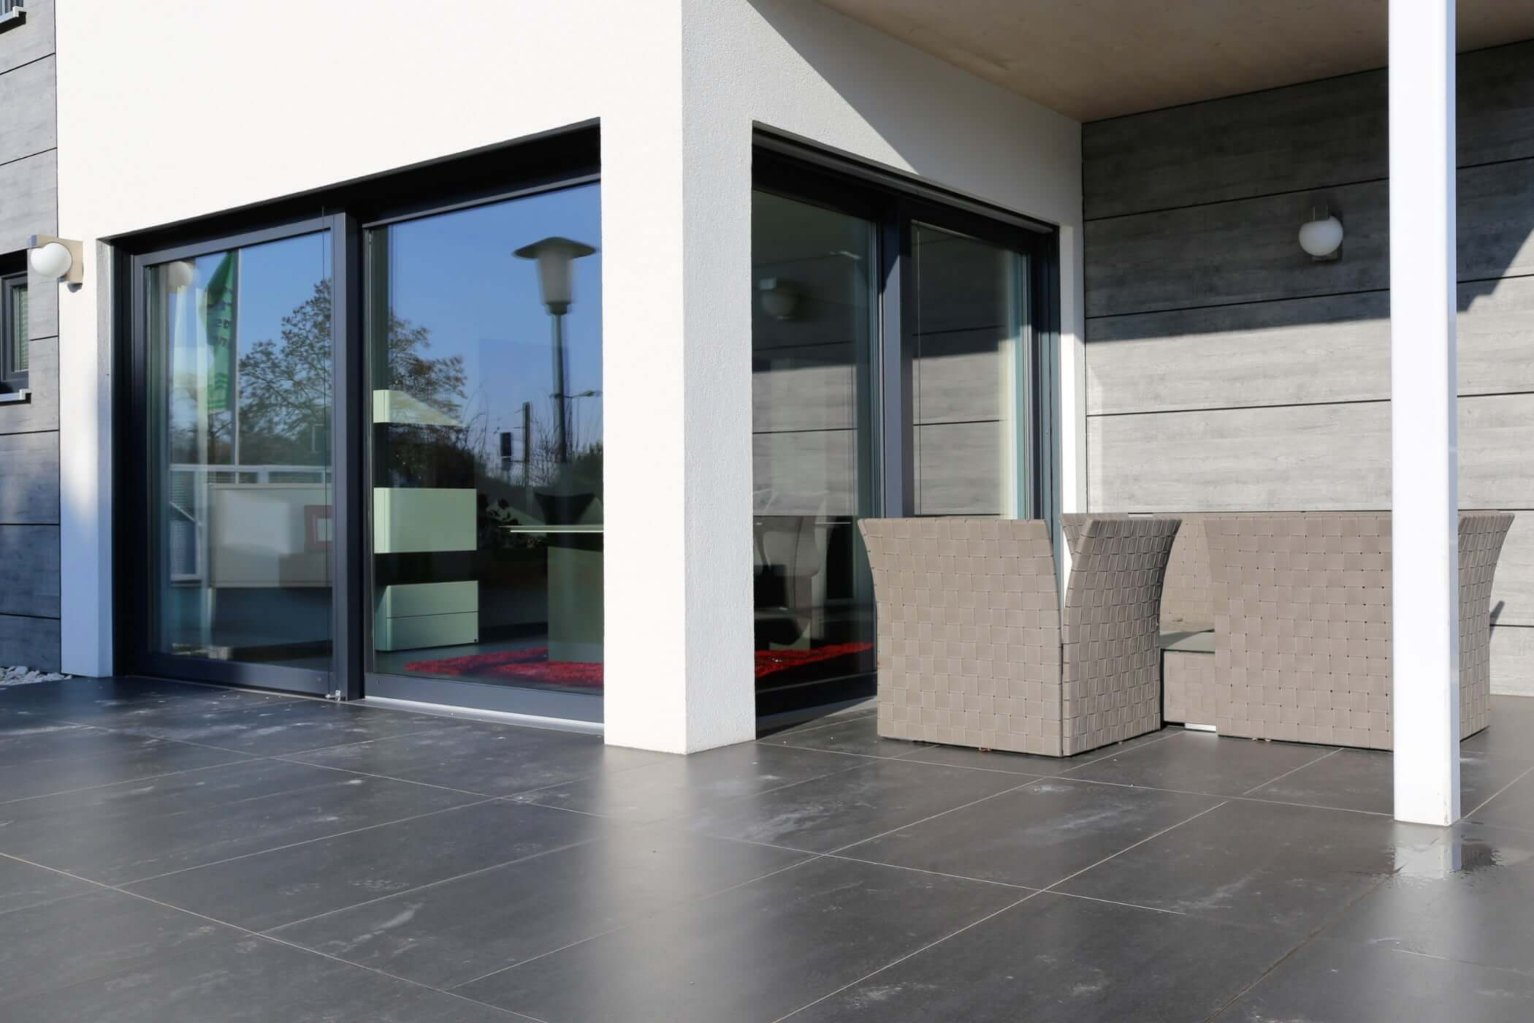 Successfully Installing Tile in Outdoor Living Spaces